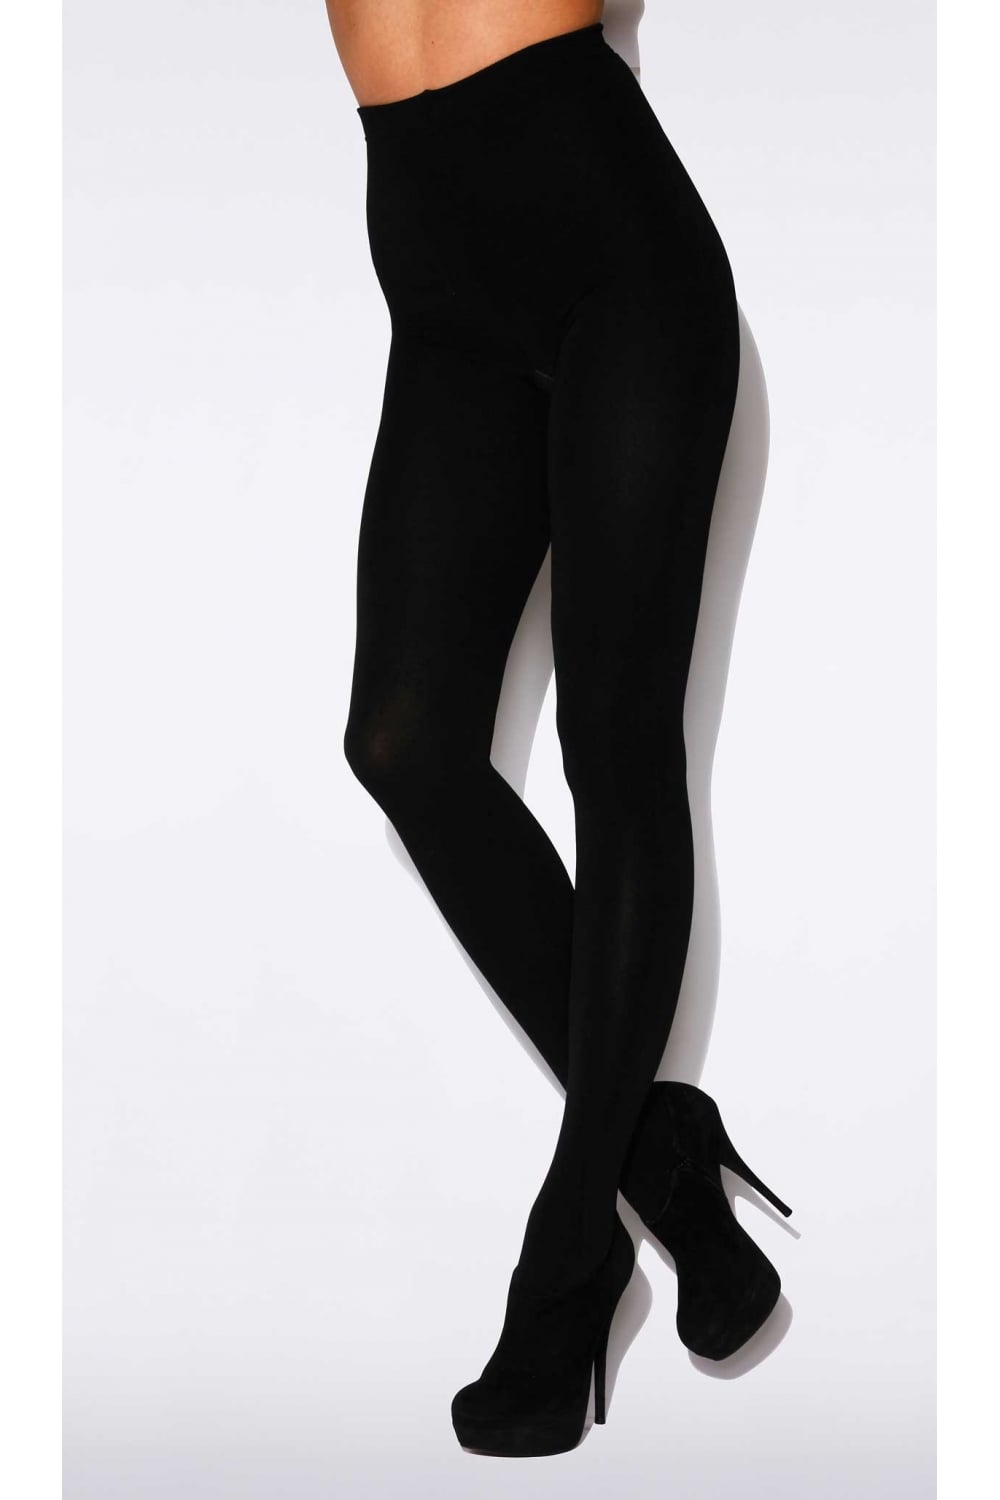 c47d878518 Charnos Plush Lined Tights